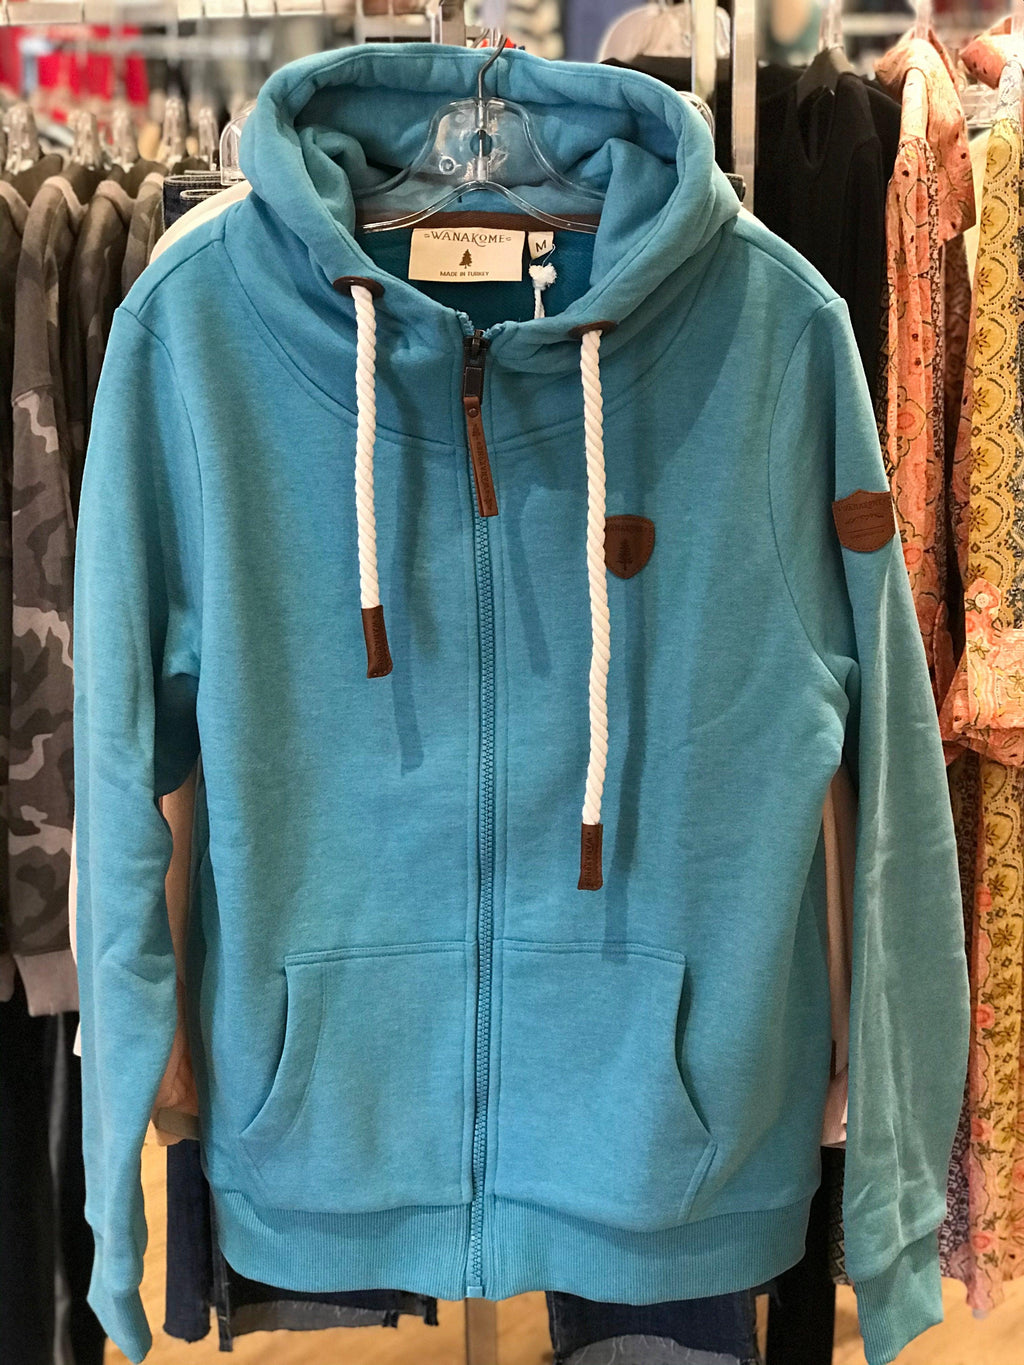 Wanakome Zeus Terry Zip up Hoodie - Biscay Bay